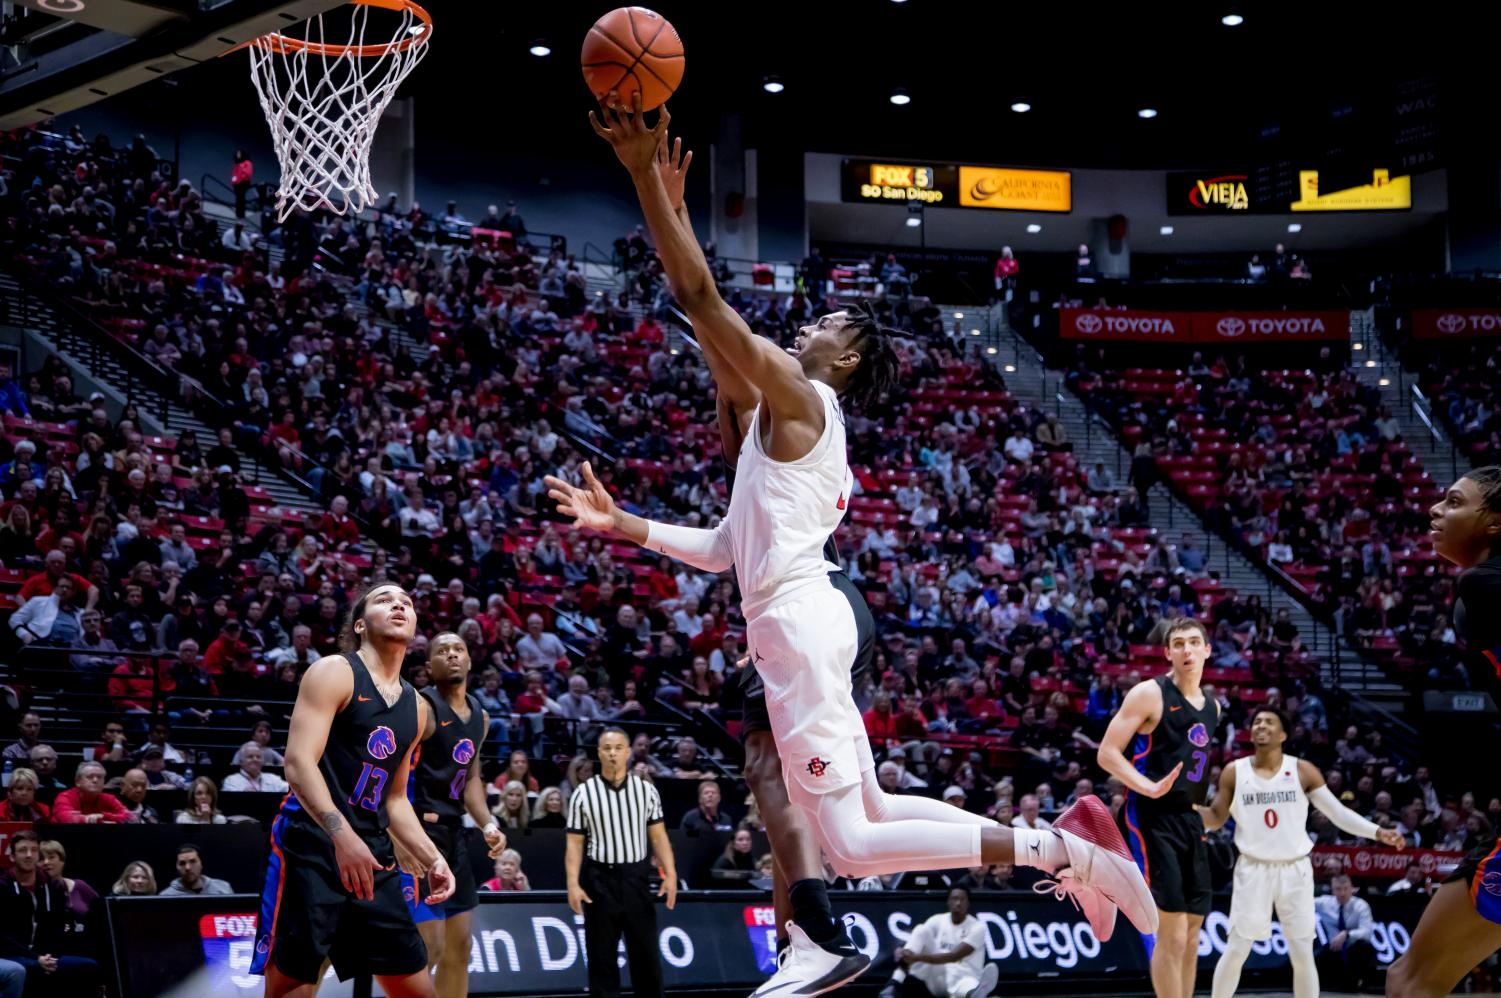 Redshirt sophomore forward Jalen McDaniels attempts a layup during the Aztecs' 71-65 victory over Boise State on Feb. 16 at Viejas Arena.